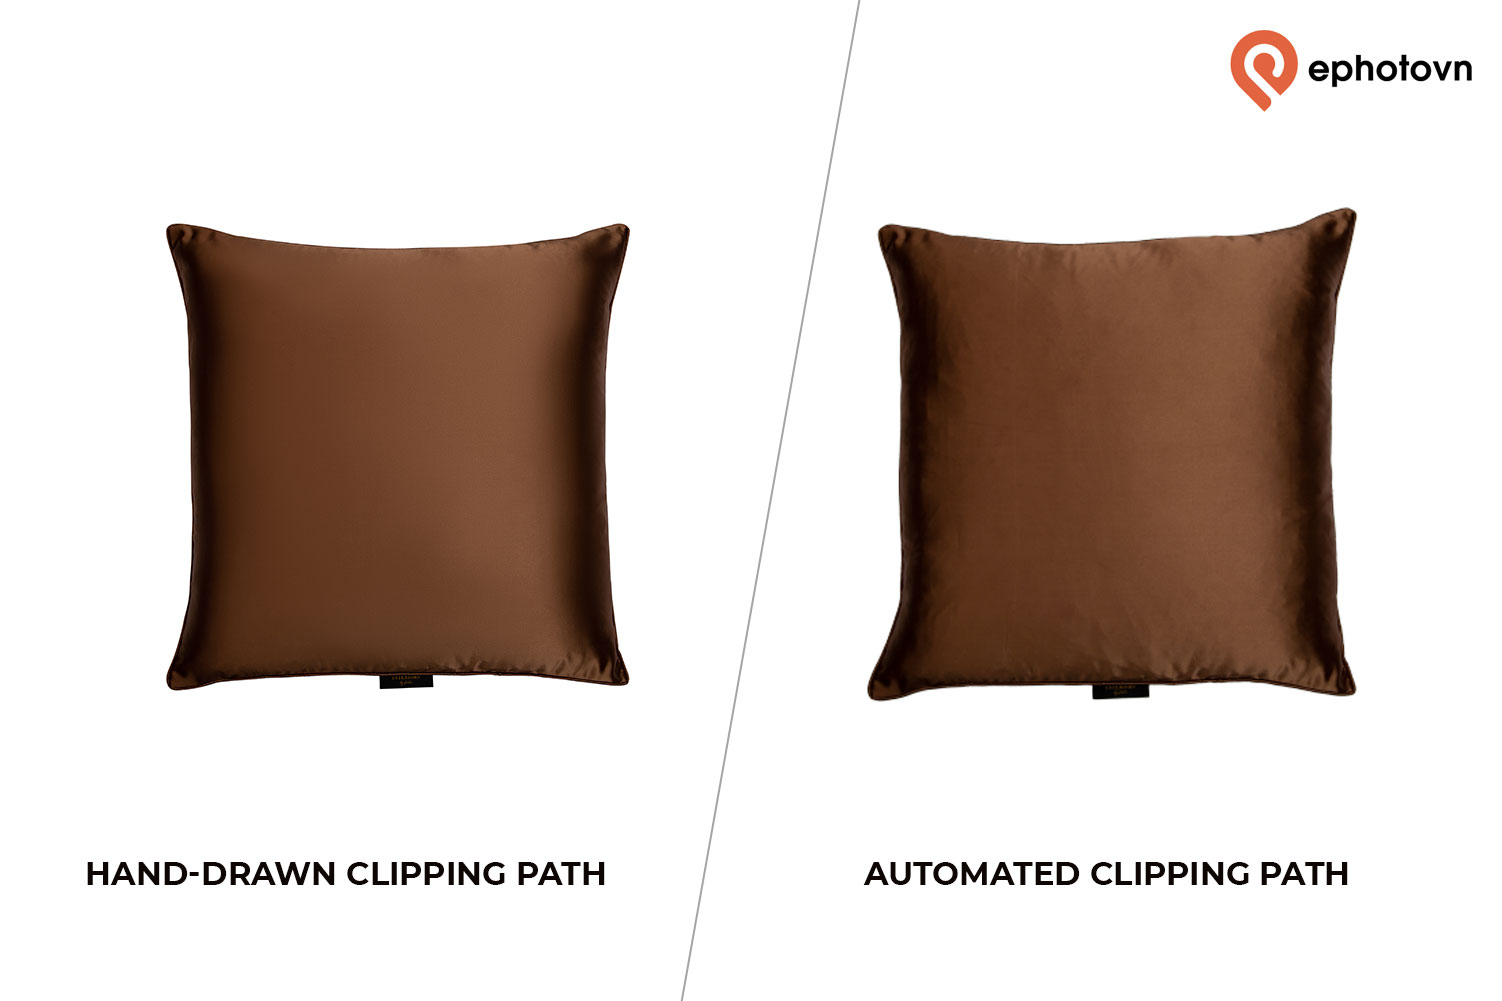 handmade vs automated clipping path